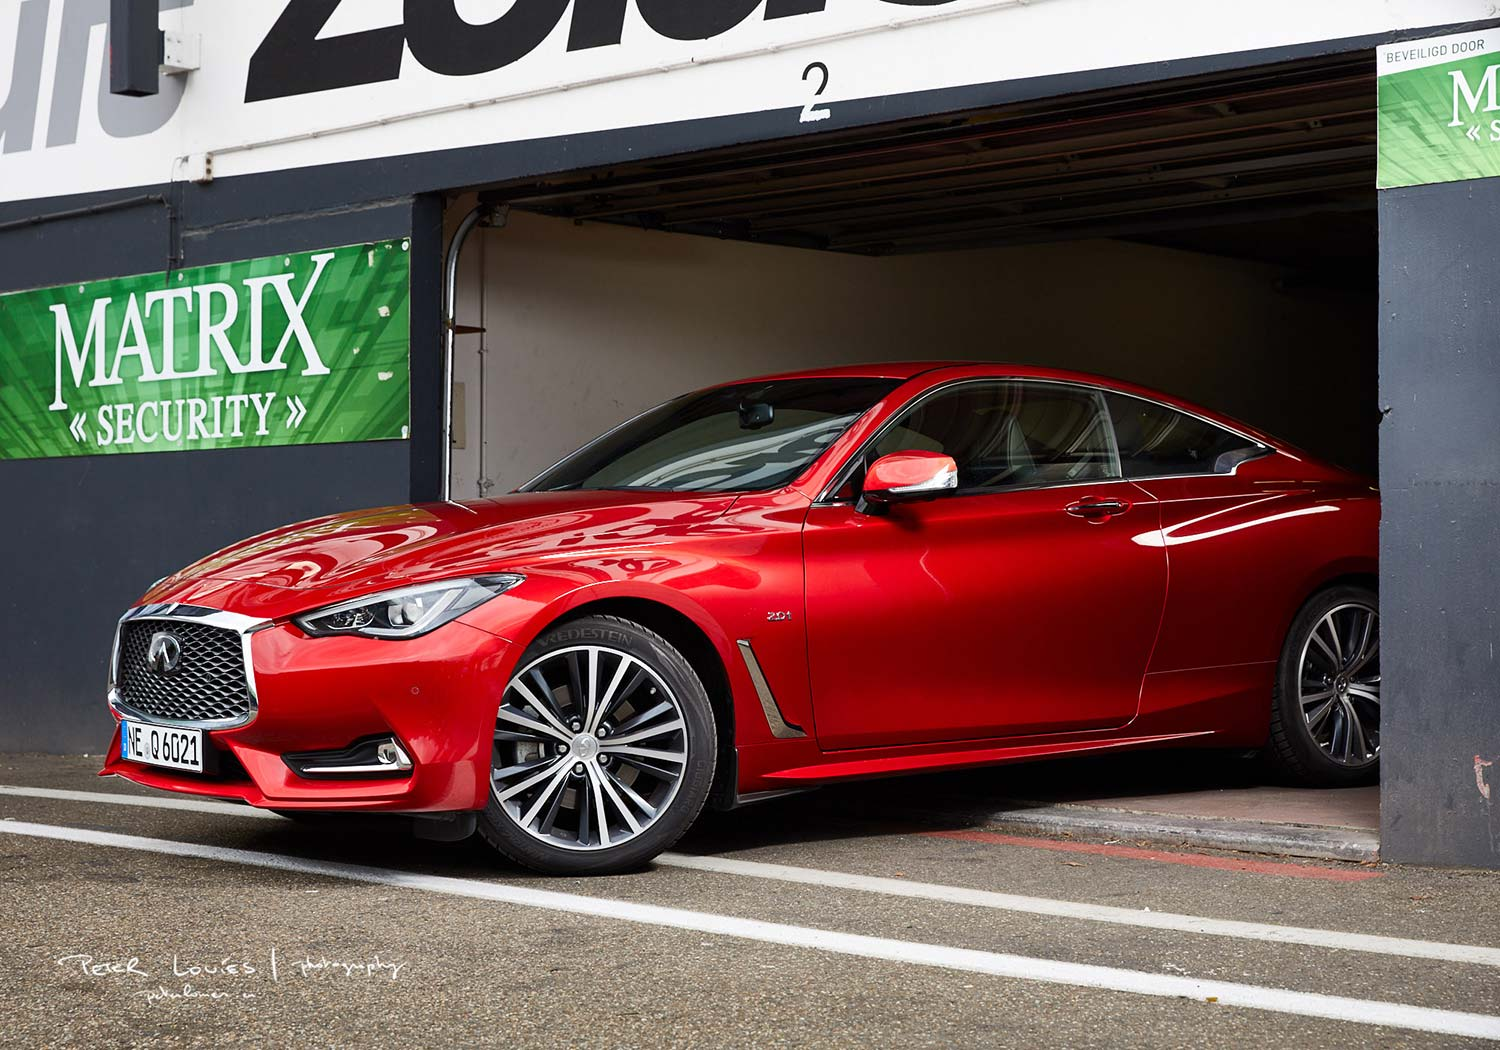 Automotive photography with Infinity Q60